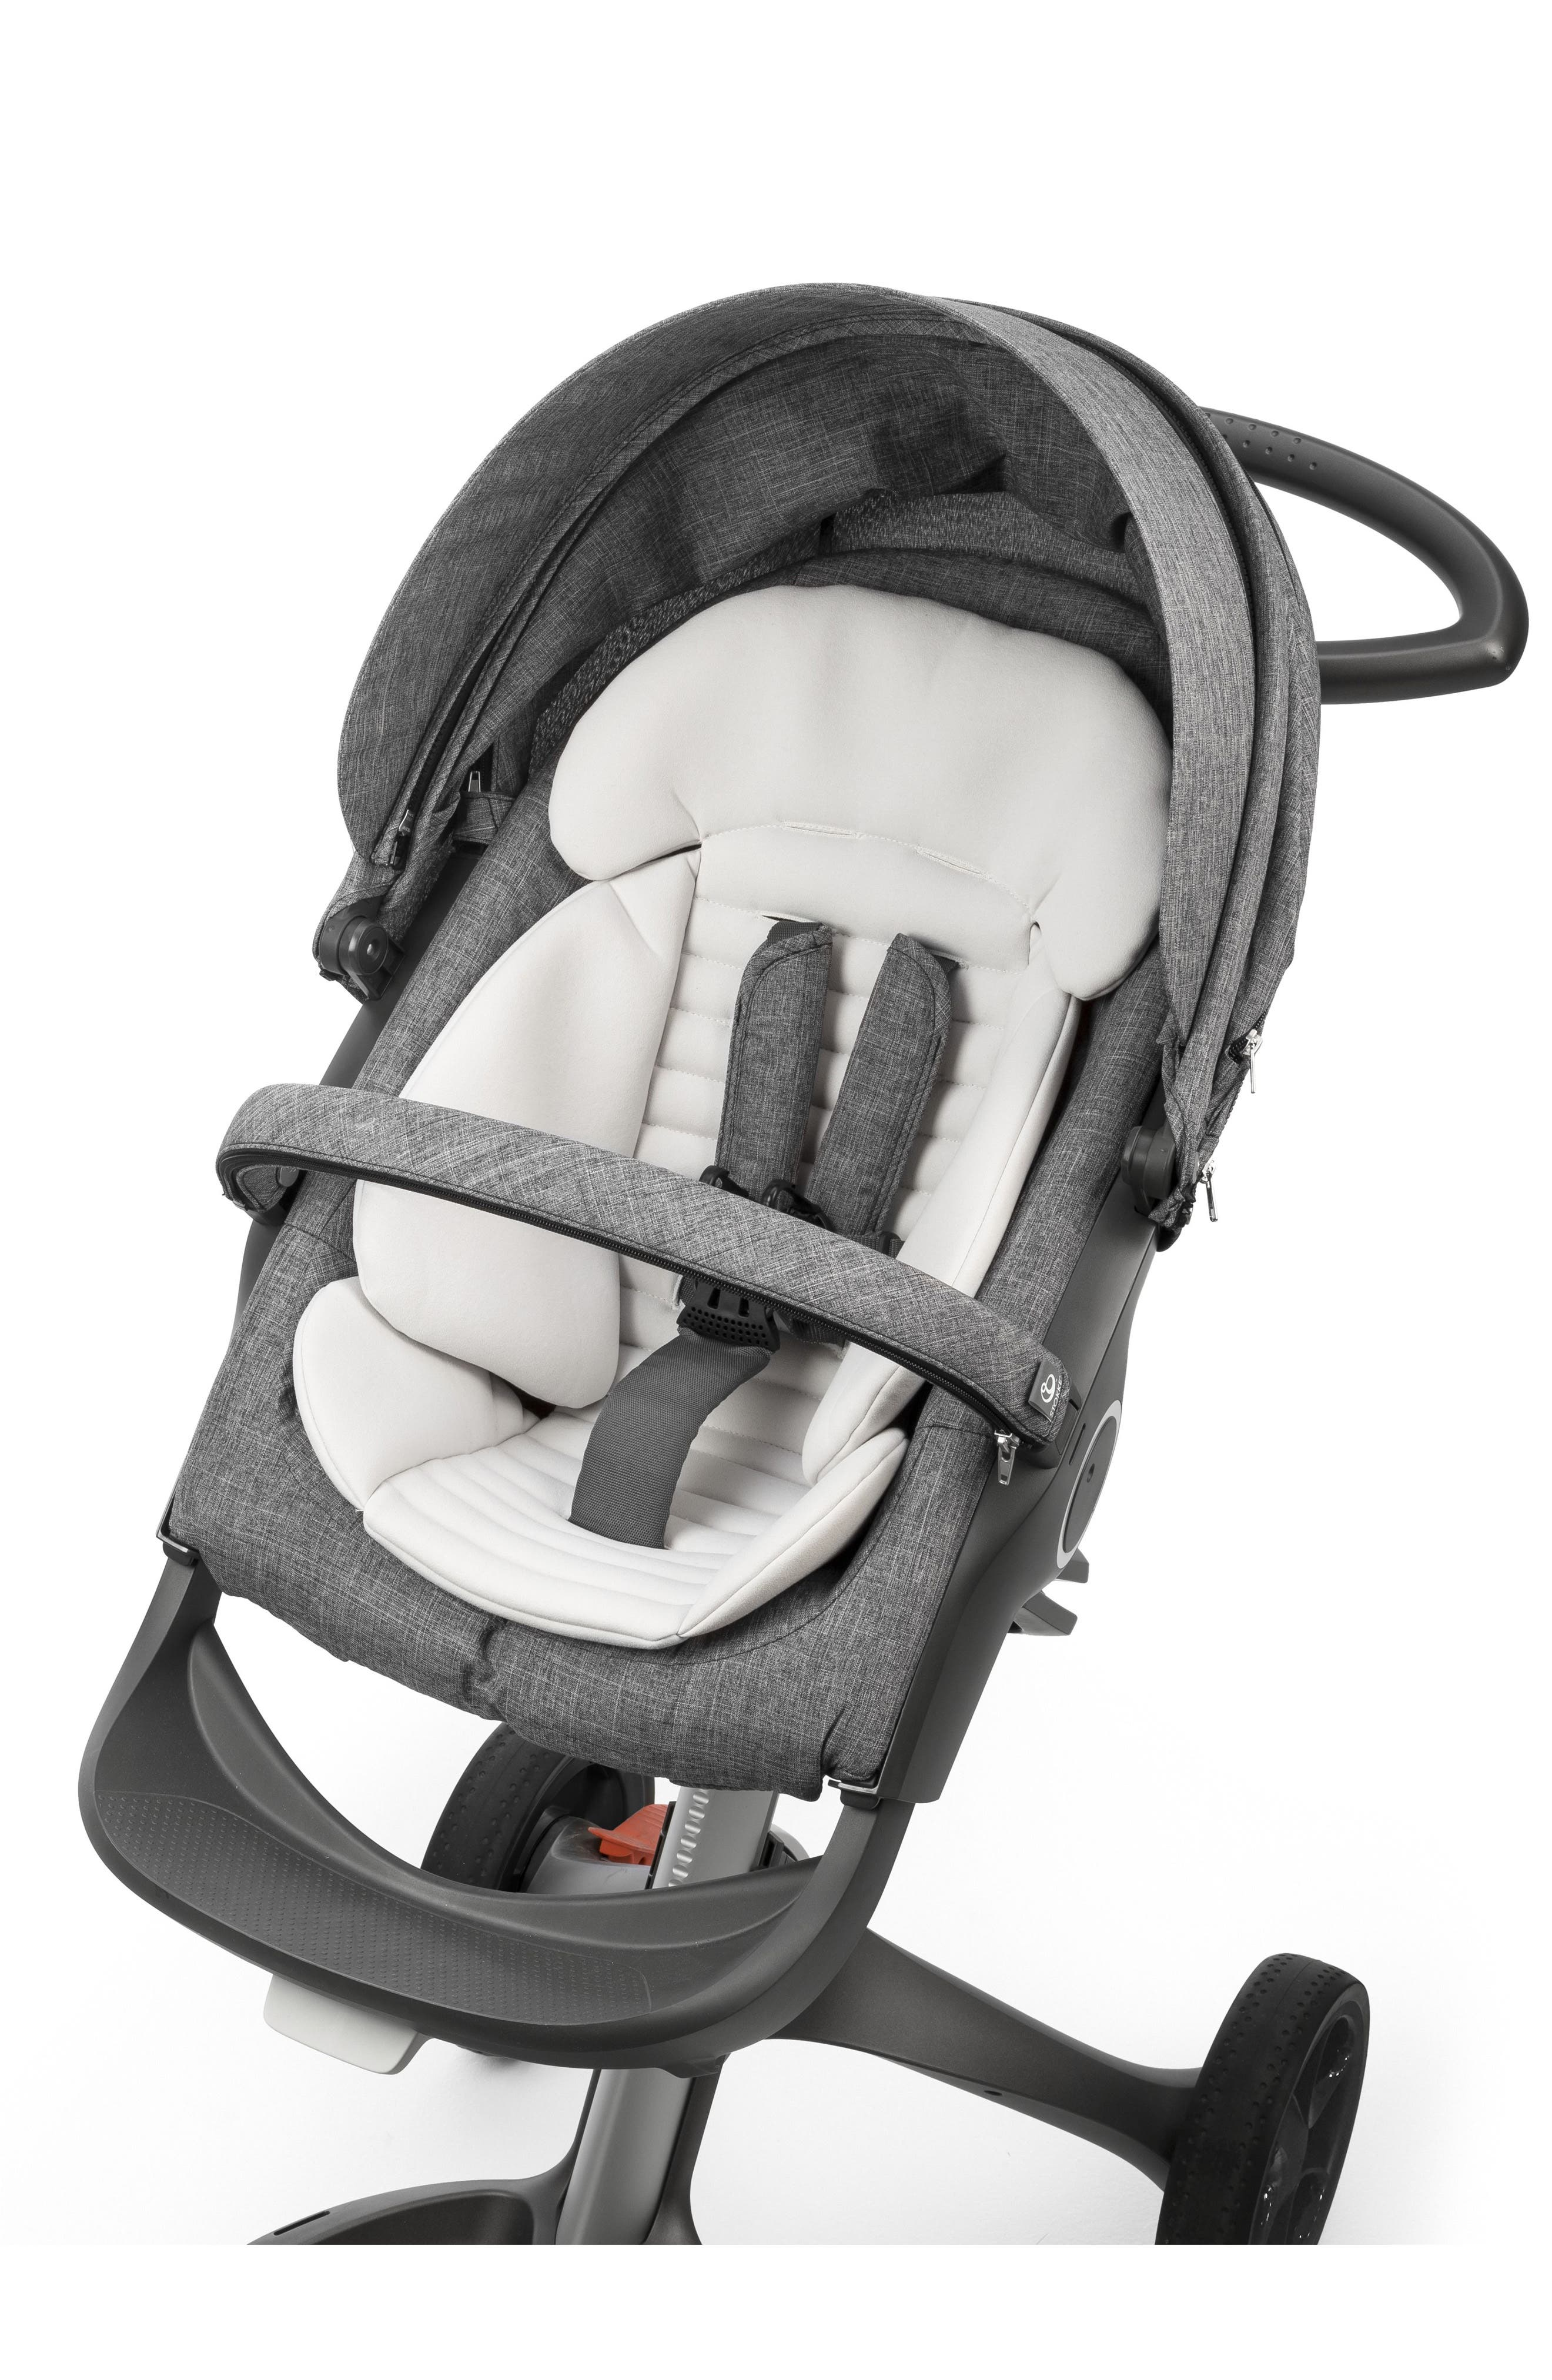 Stroller Seat Inlay for Xplory/Trailz/Crusi Strollers,                             Alternate thumbnail 2, color,                             Grey